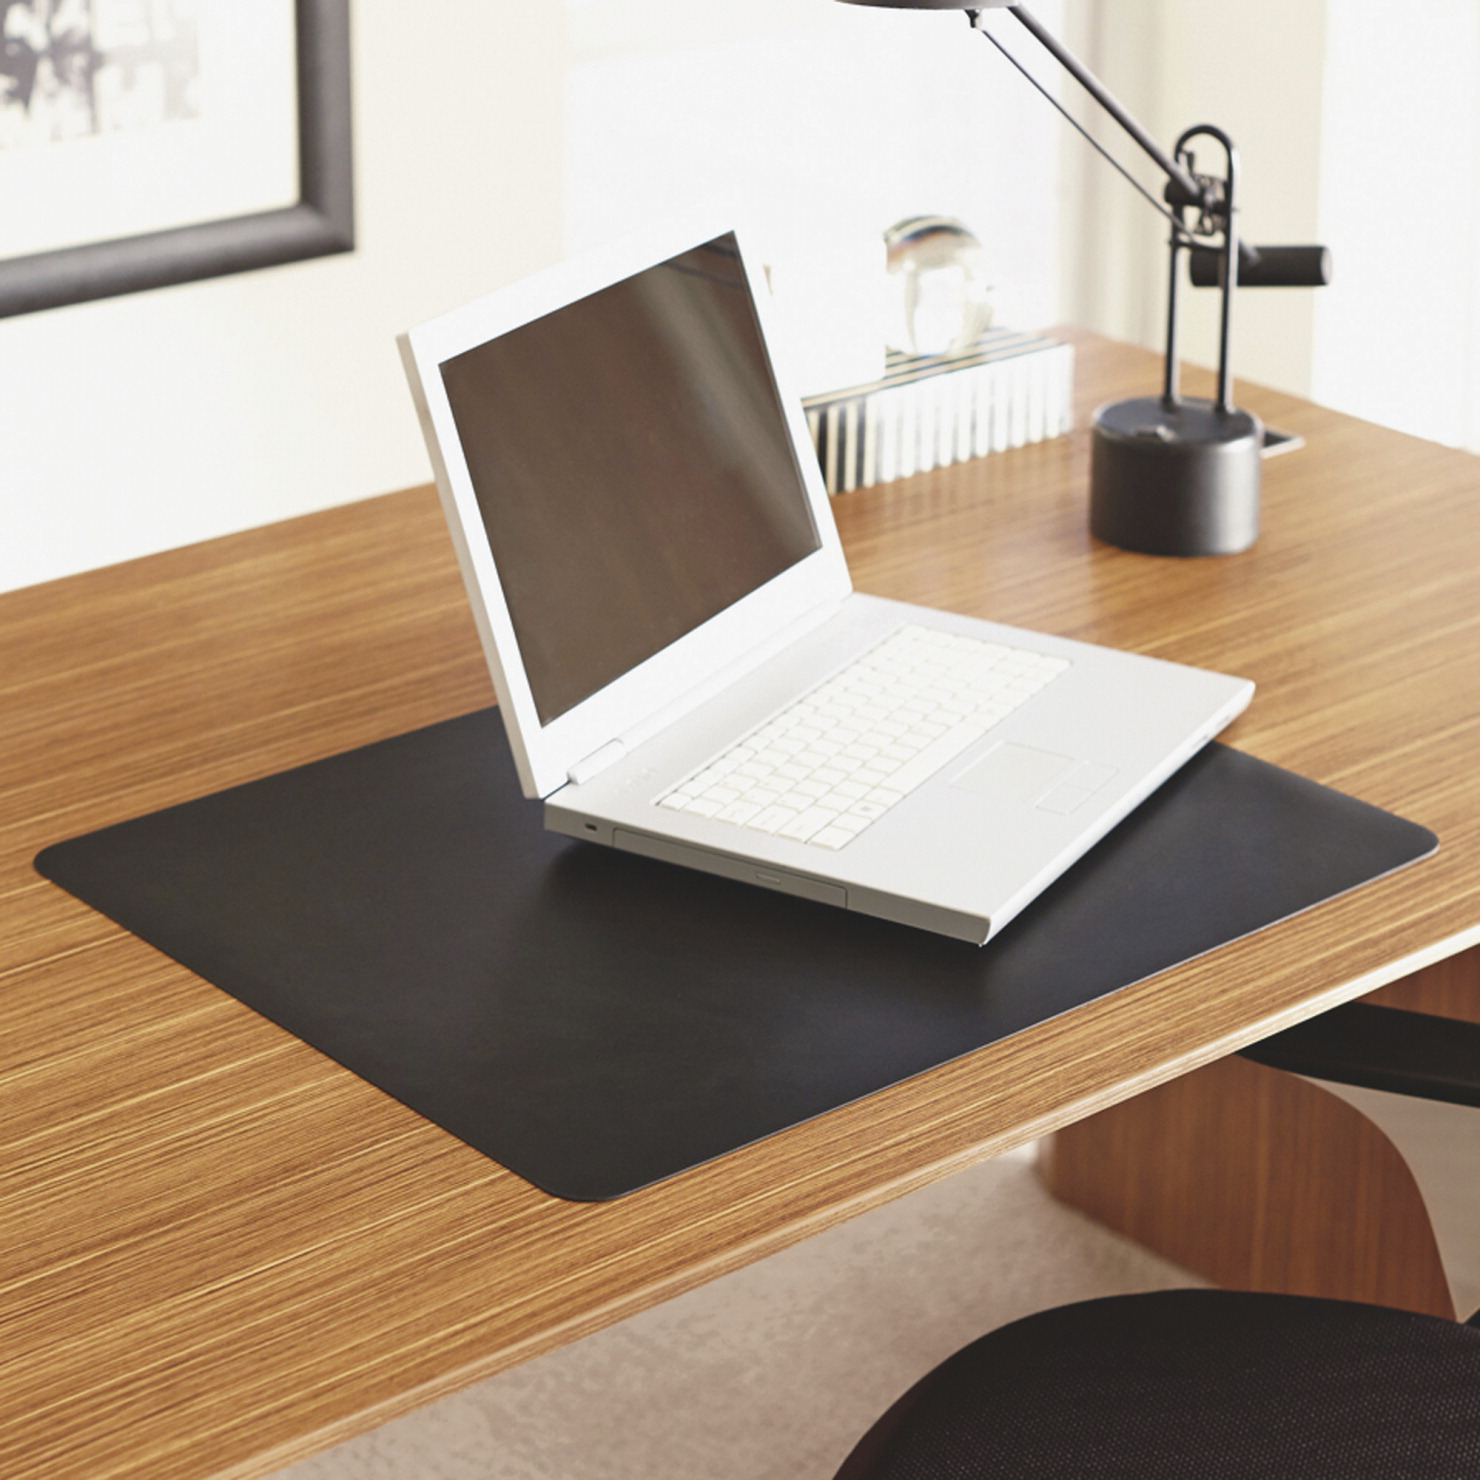 Desk Pad SOAR Life Products - Table pad store